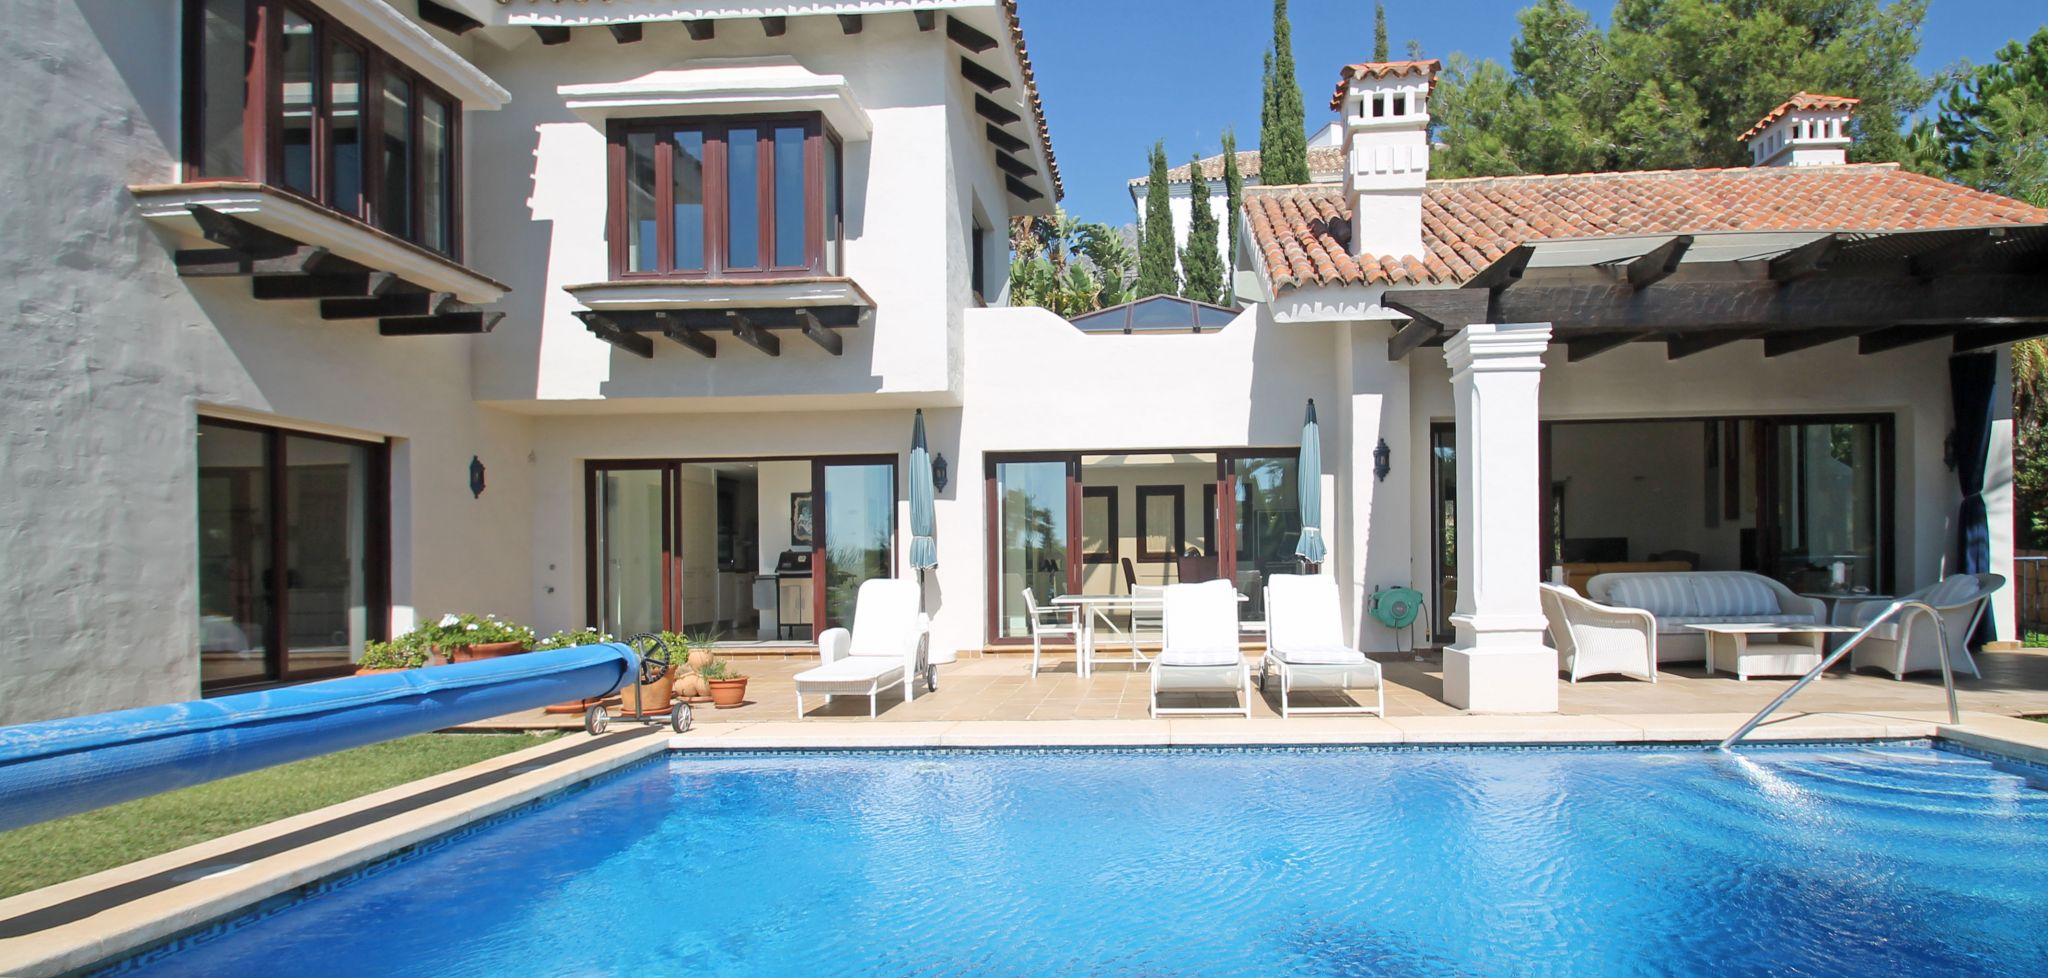 Prime location four bedroom villa with sea views in Sierra Blanca Marbella